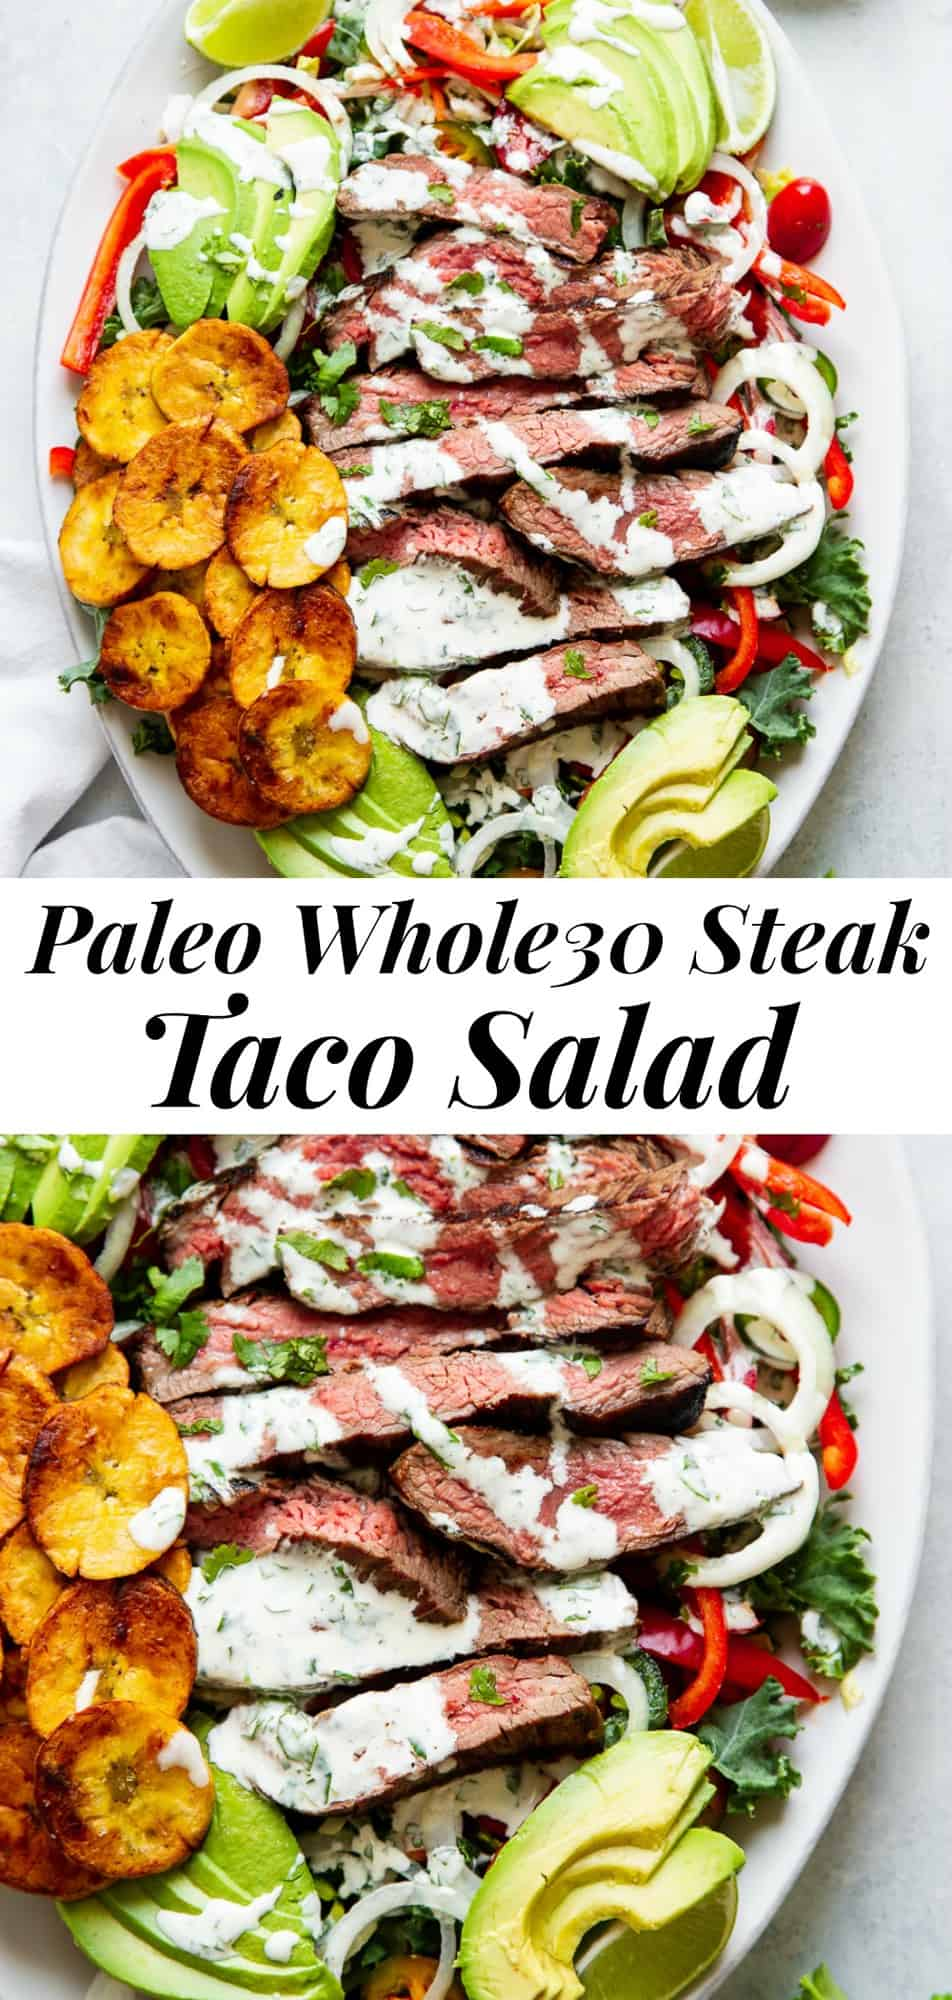 This steak taco salad is perfect for summer grilling and packed with all the good stuff! Thinly sliced marinated flank steak with greens, avocado, tomatoes, peppers, onions, plantain chips and a tangy, zesty cilantro ranch dressing. It's Whole30 compliant, paleo, gluten free and dairy free. #whole30 #paleo #cleaneating #salad